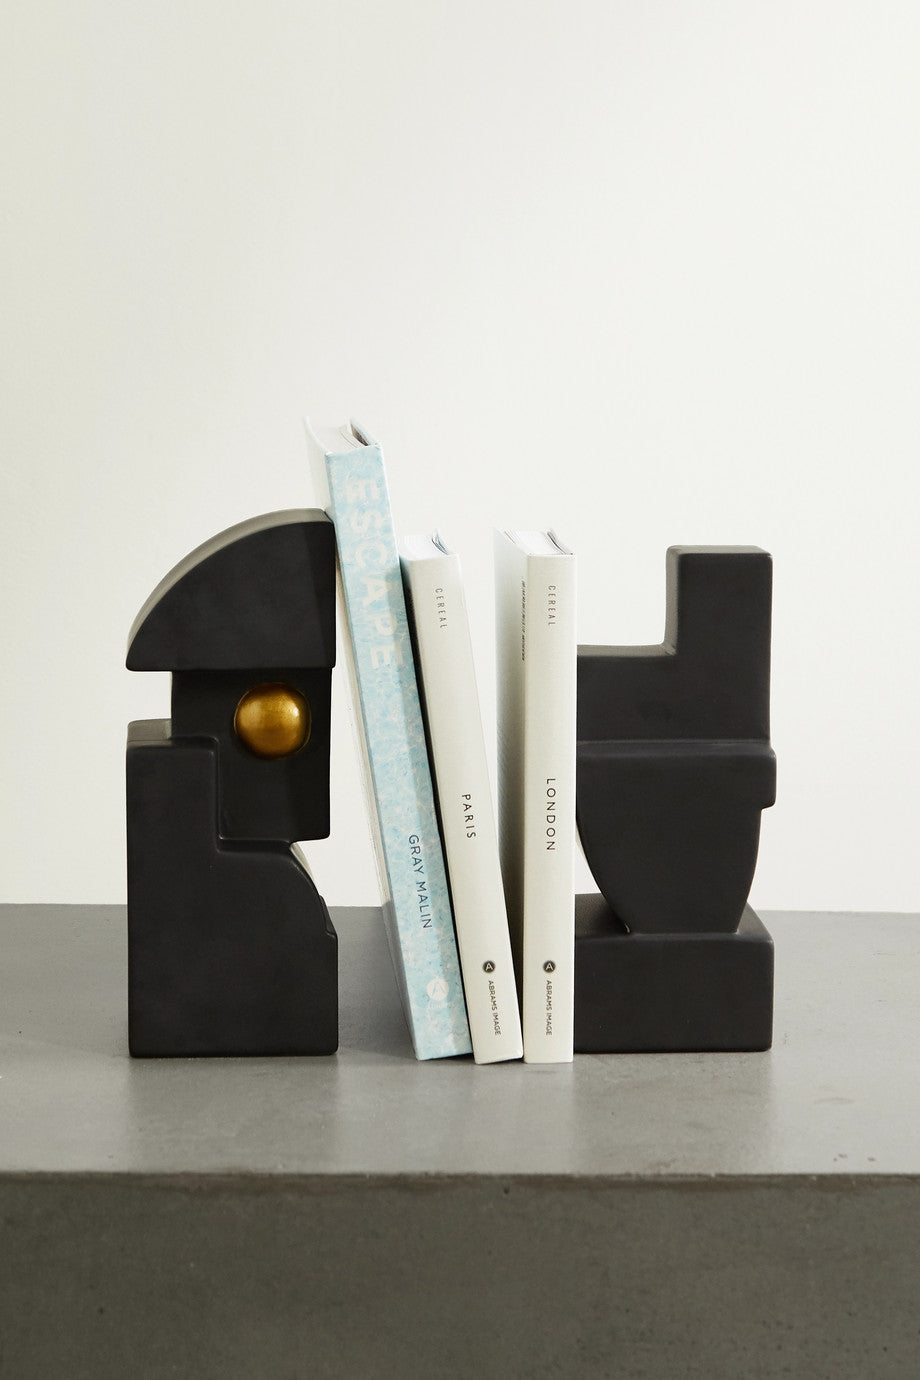 Cubisme Bookend One